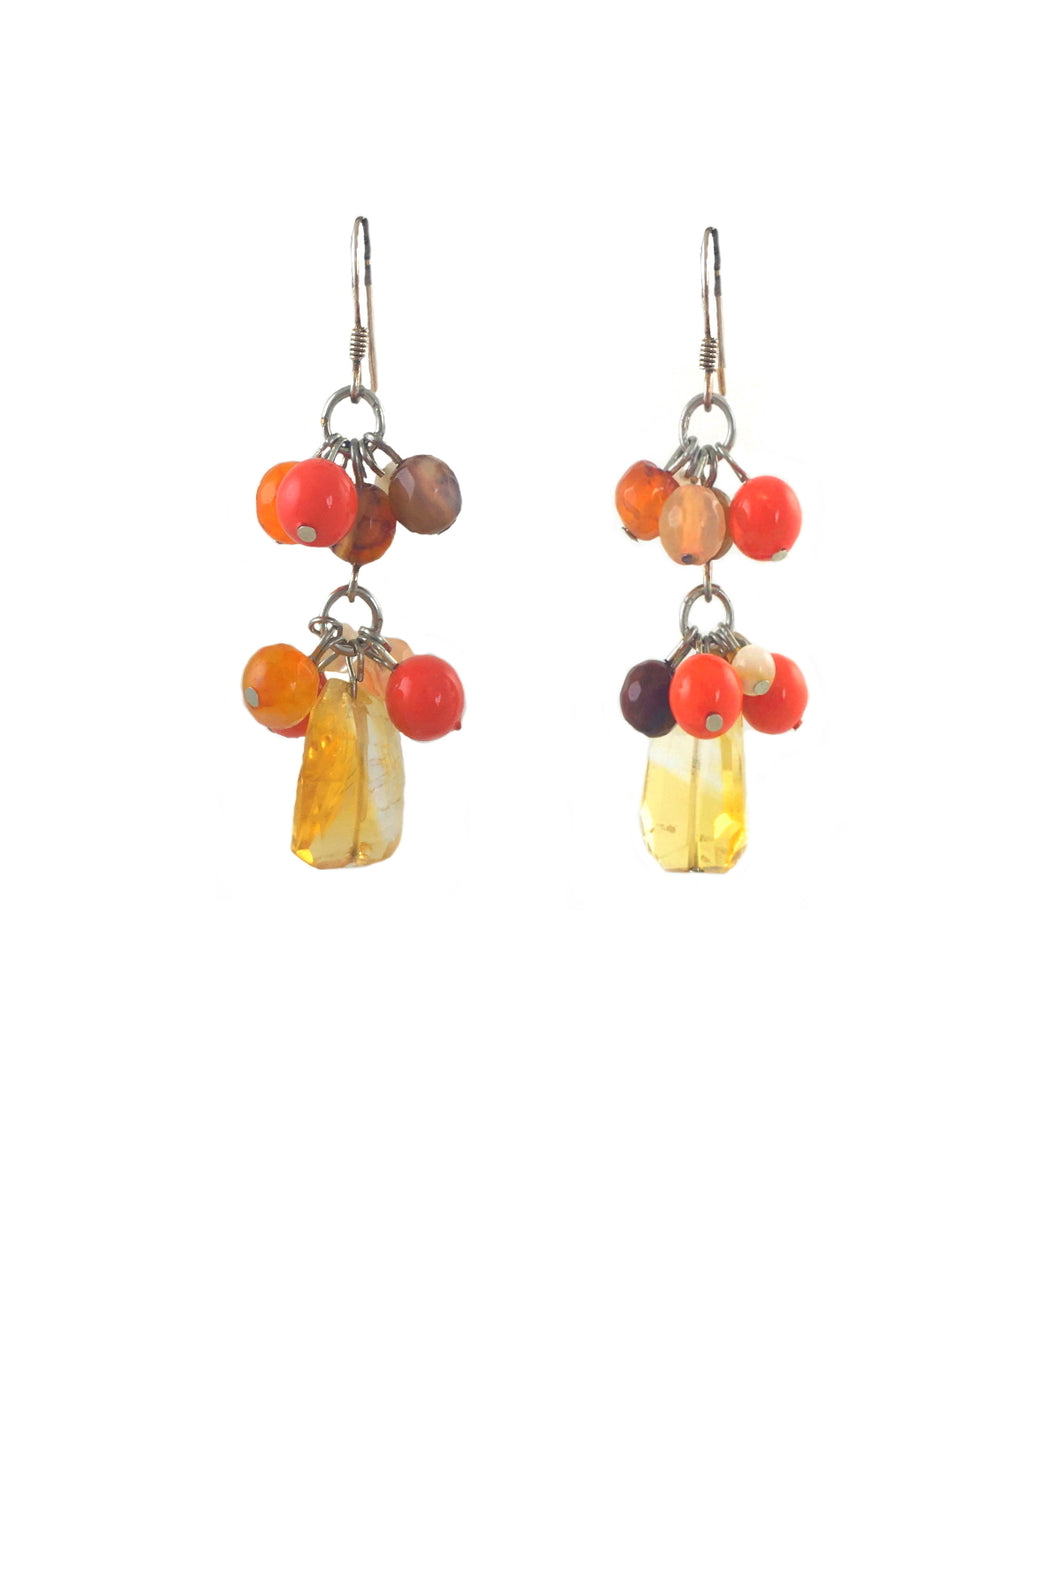 SALE - Citrine Nina Agate Earrings